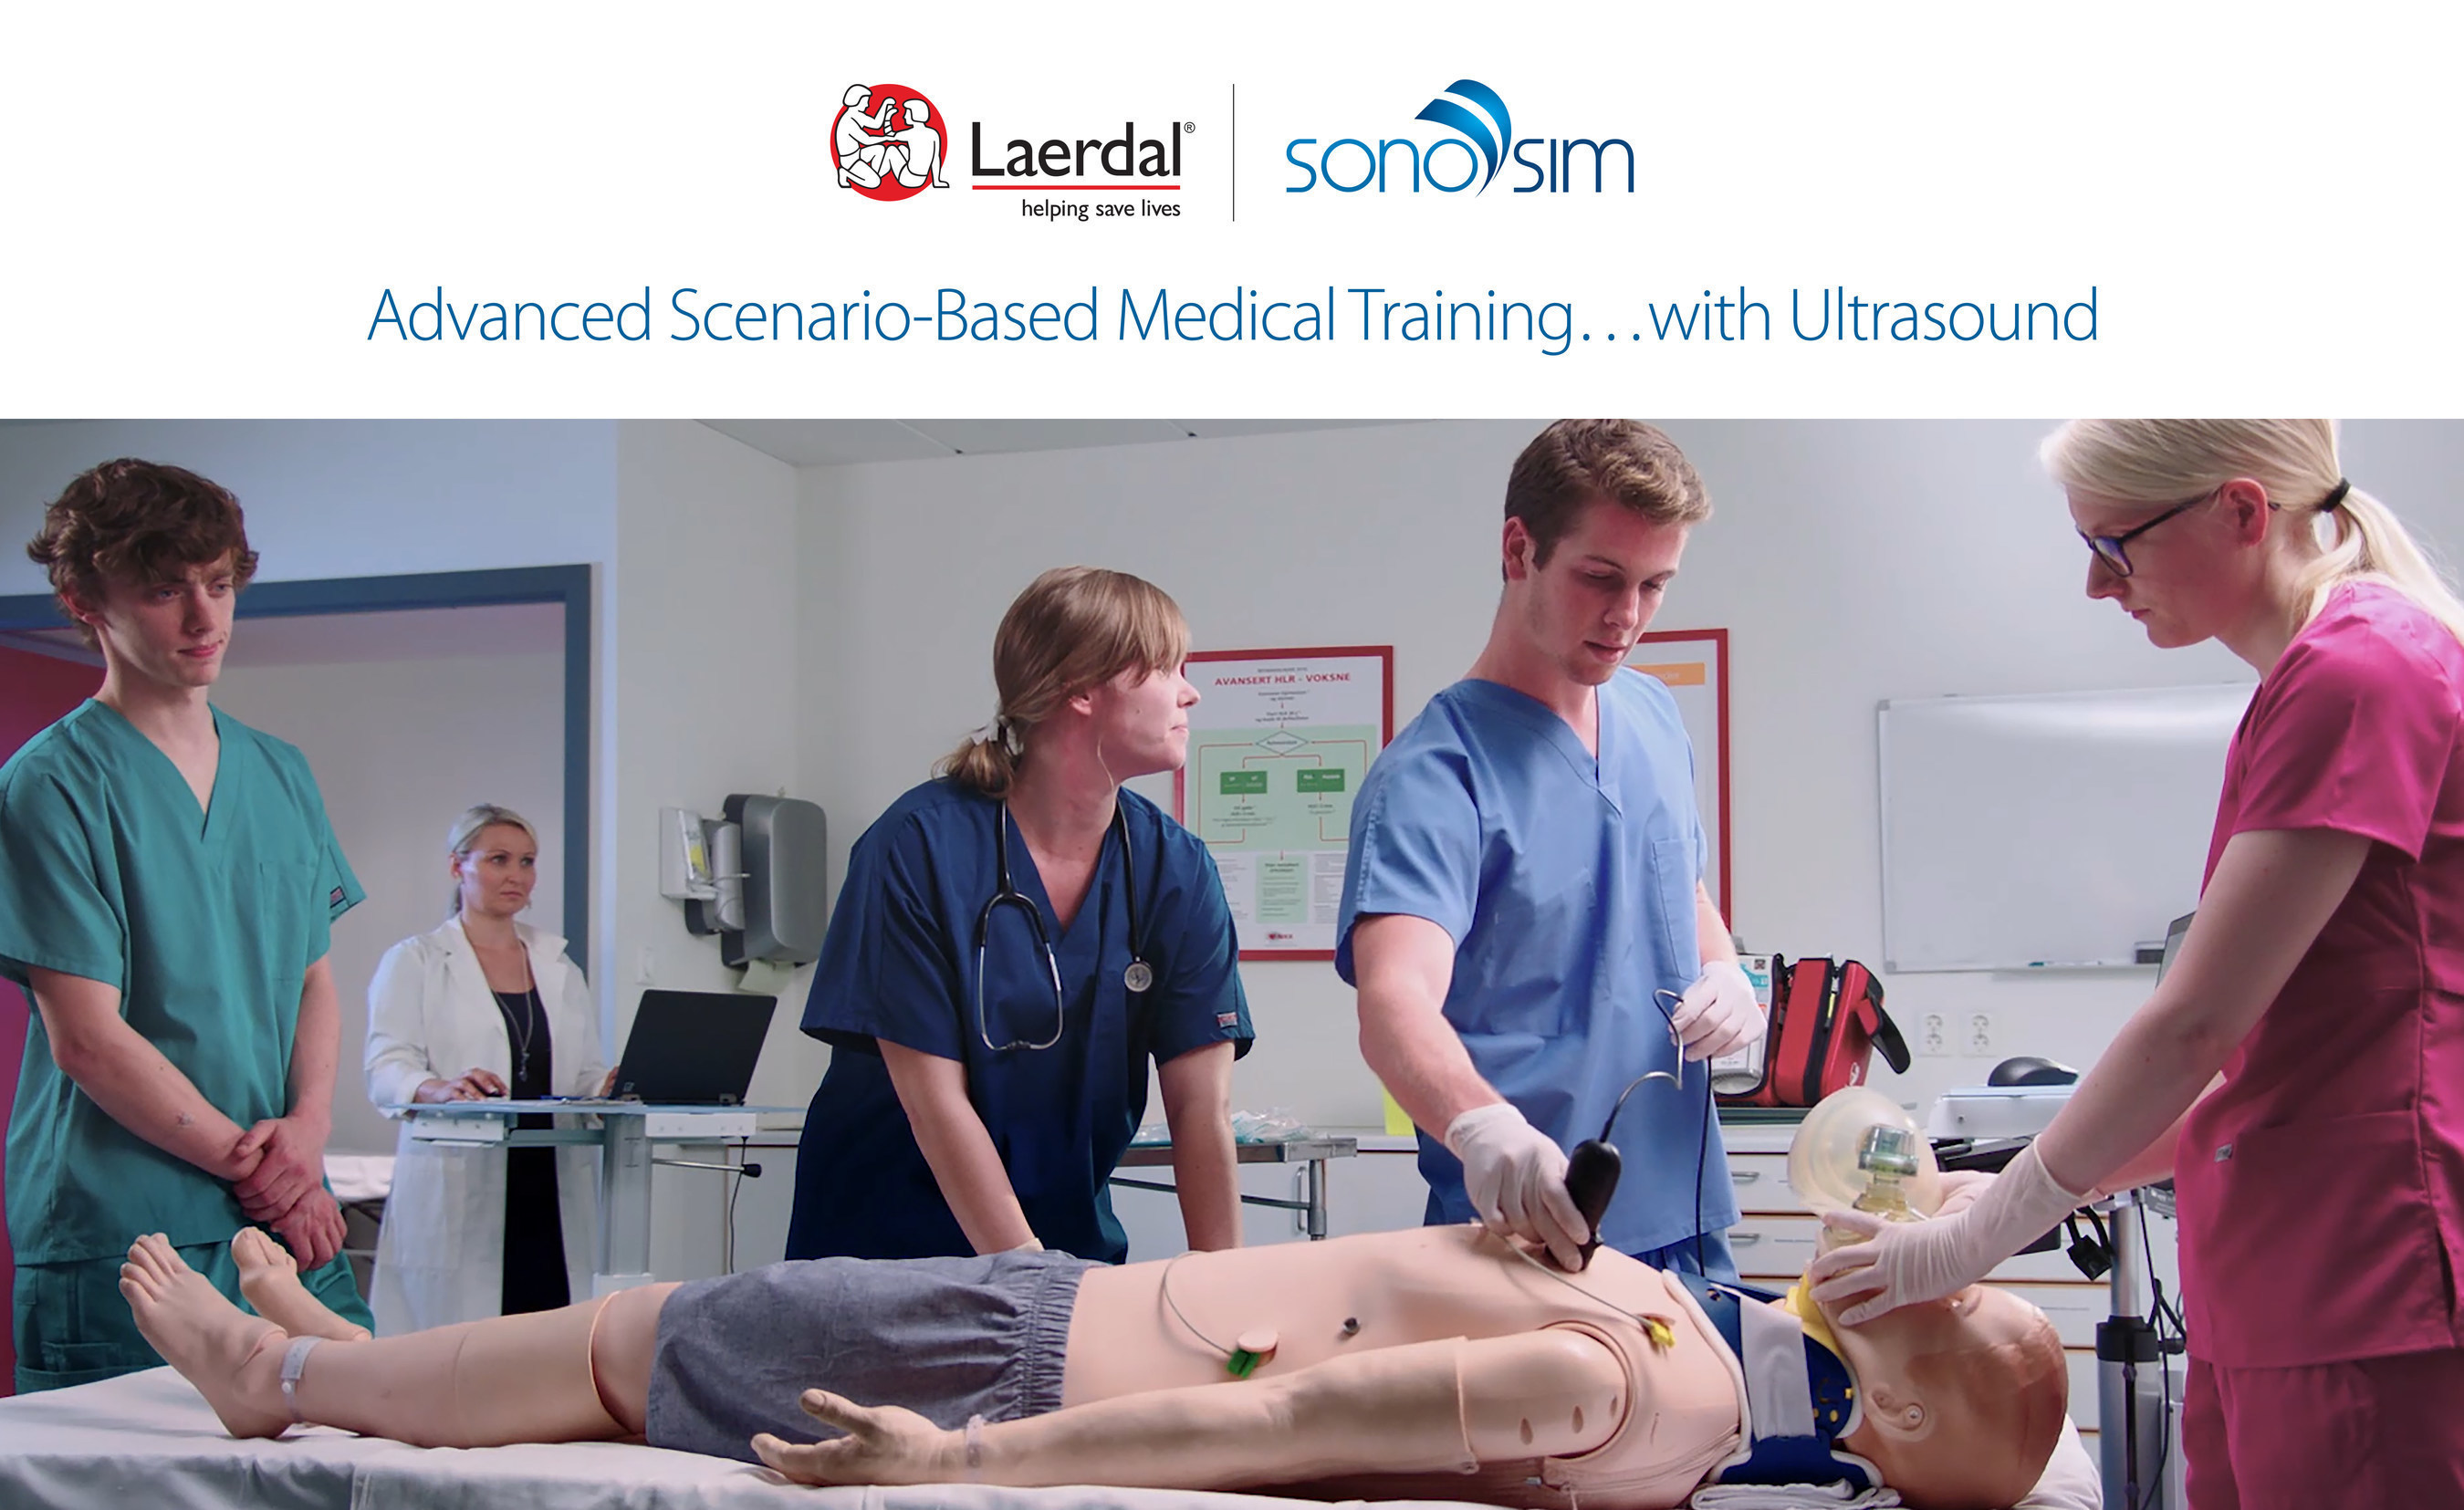 The Laerdal-SonoSim Ultrasound Solution for SimMan3G and SimMom brings ultrasound training to life with computerized manikins that can breathe, blink, and bleed just like humans, bridging classroom learning and real-life clinical experience without putting actual patients at risk. The integration of the SonoSim(R) Ultrasound Training Solution into Laerdal Medical's patient simulator platform provides an easy-to-use and highly realistic ultrasound training and proficiency assessment tool.